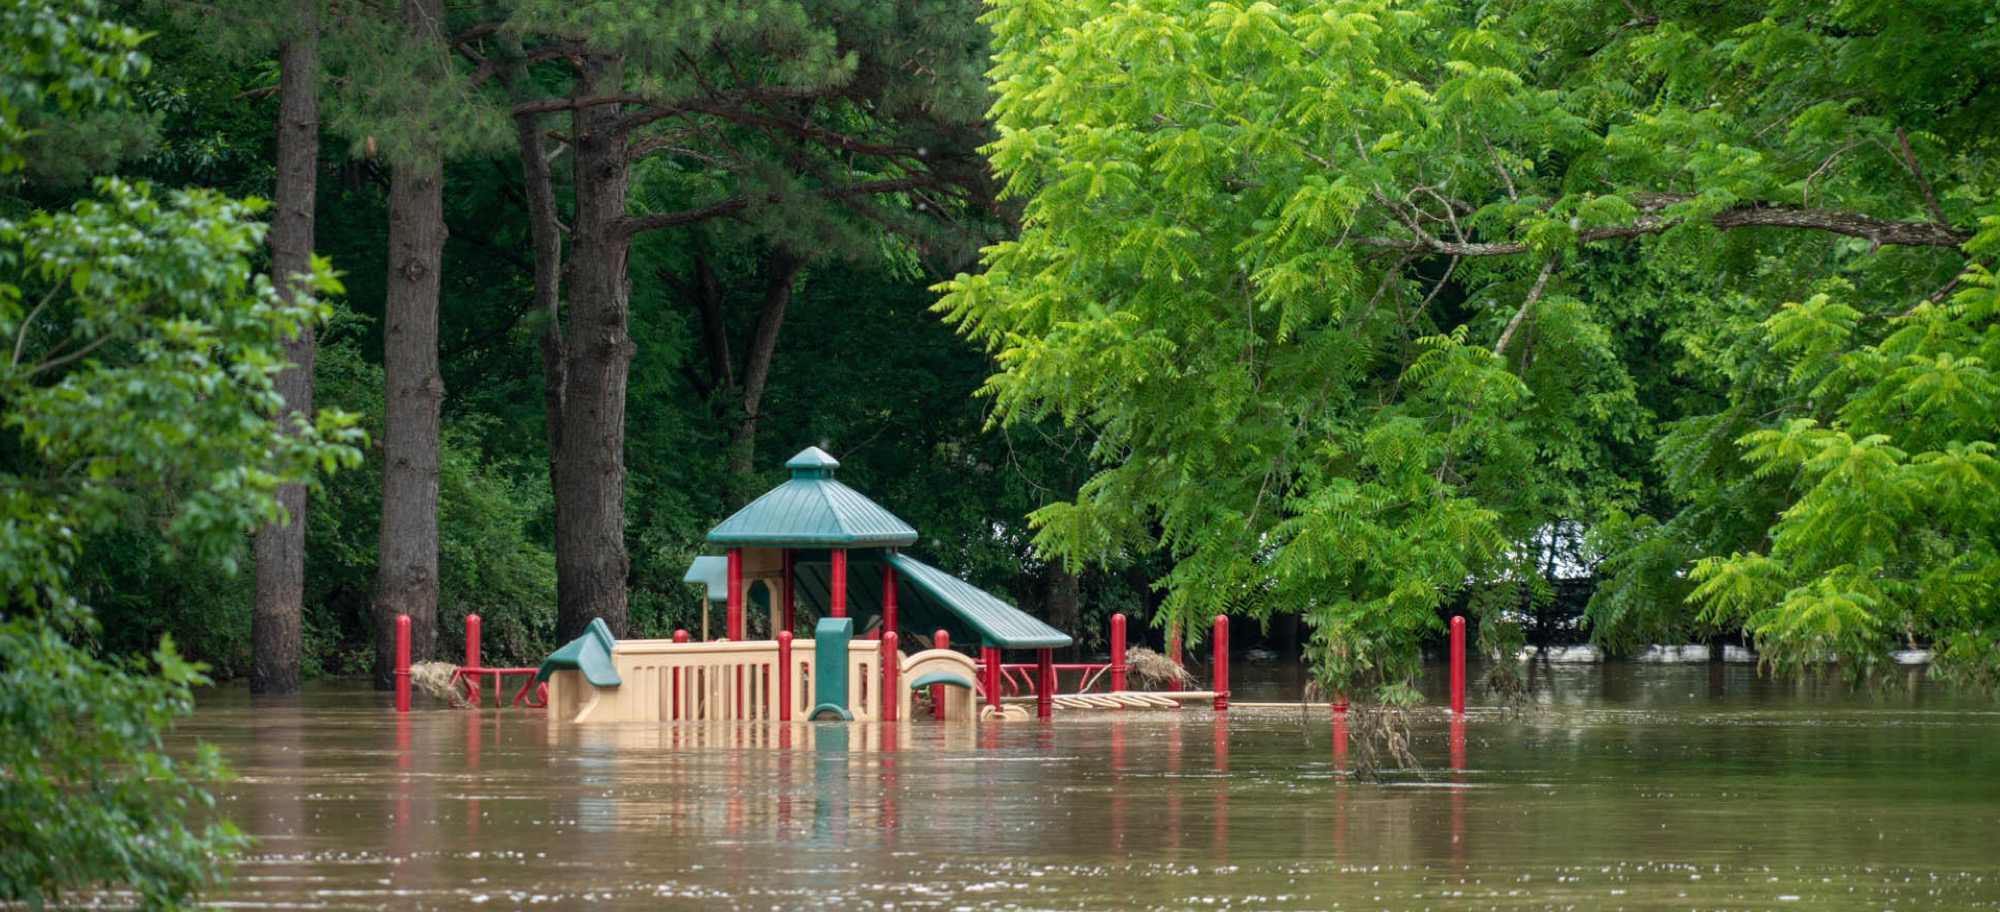 Playground under water after flood